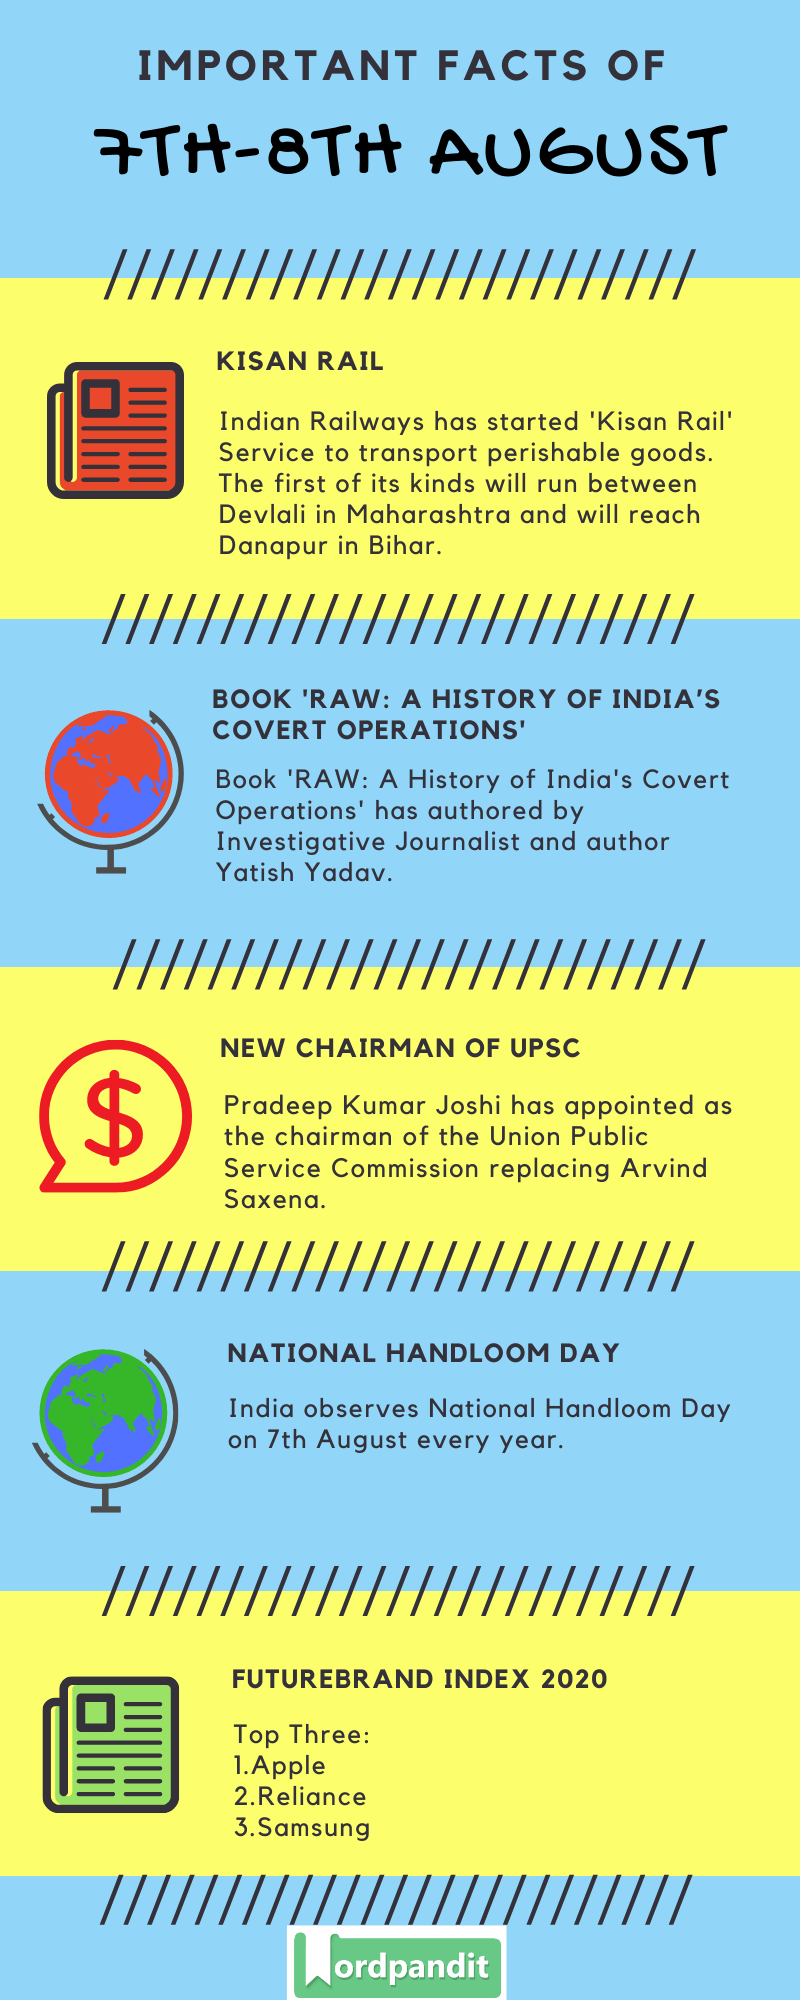 Daily Current Affairs 7th-8th August 2020 Current Affairs Quiz 7th-8th August 2020 Current Affairs Infographic